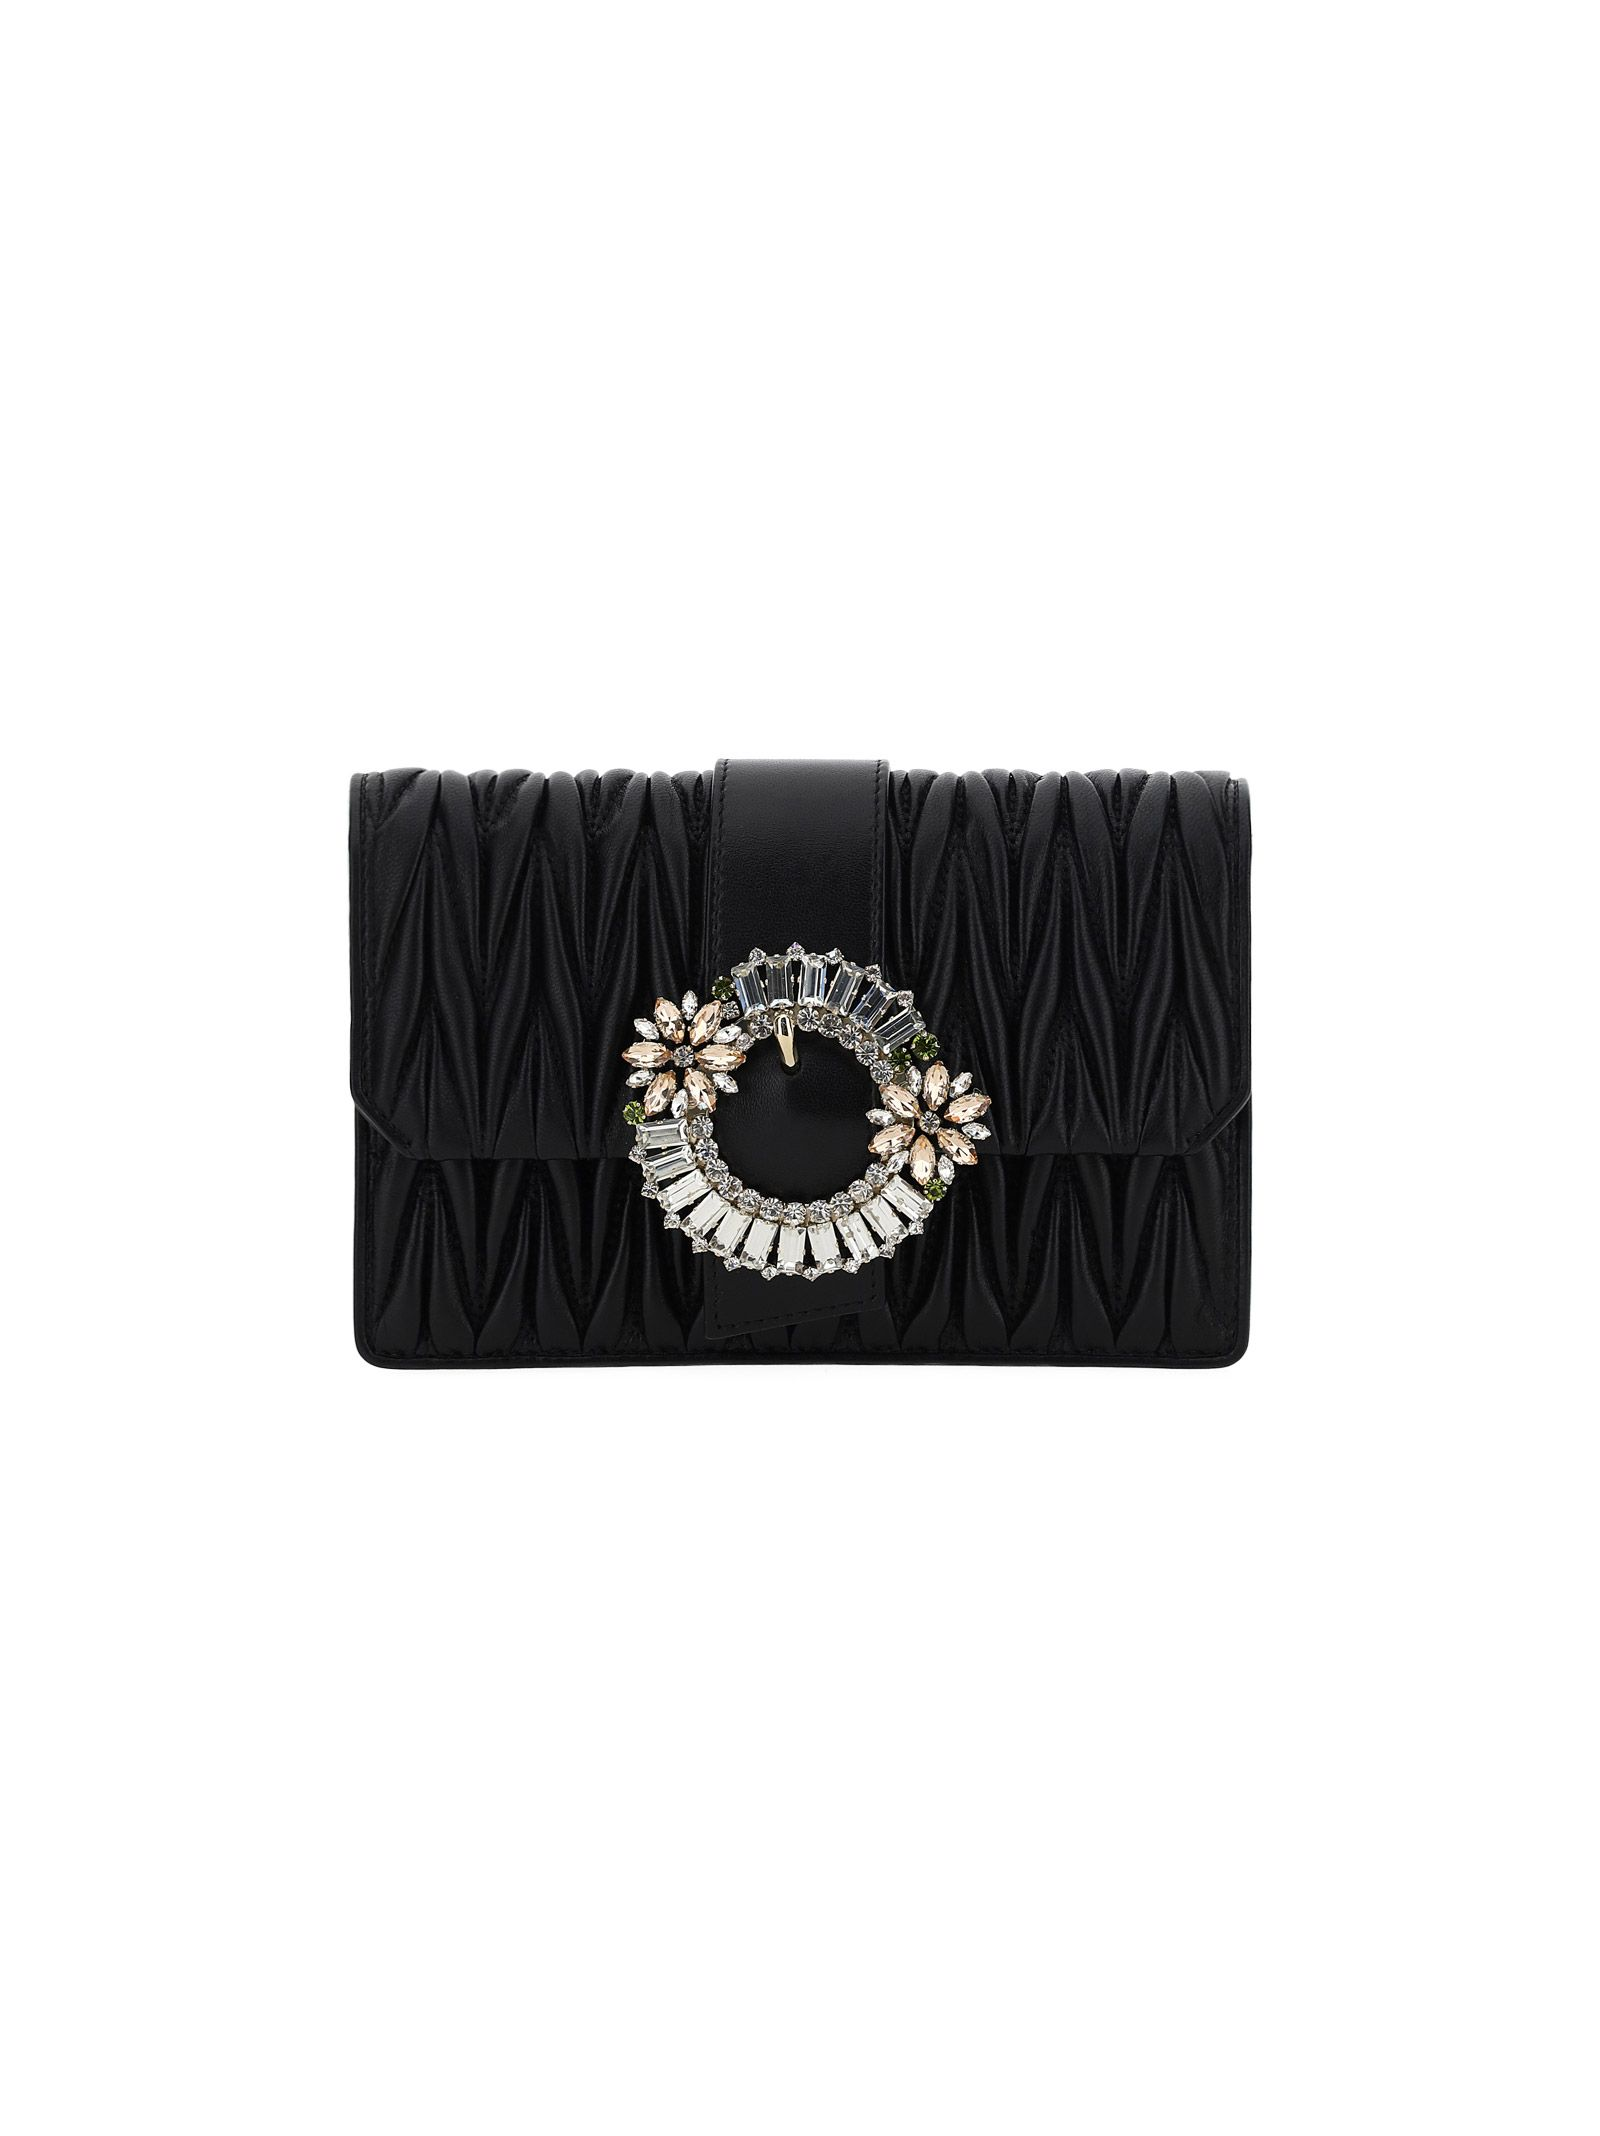 Miu Miu MIU MIU WOMEN'S 5BH095VOJON88F0002 BLACK OTHER MATERIALS SHOULDER BAG